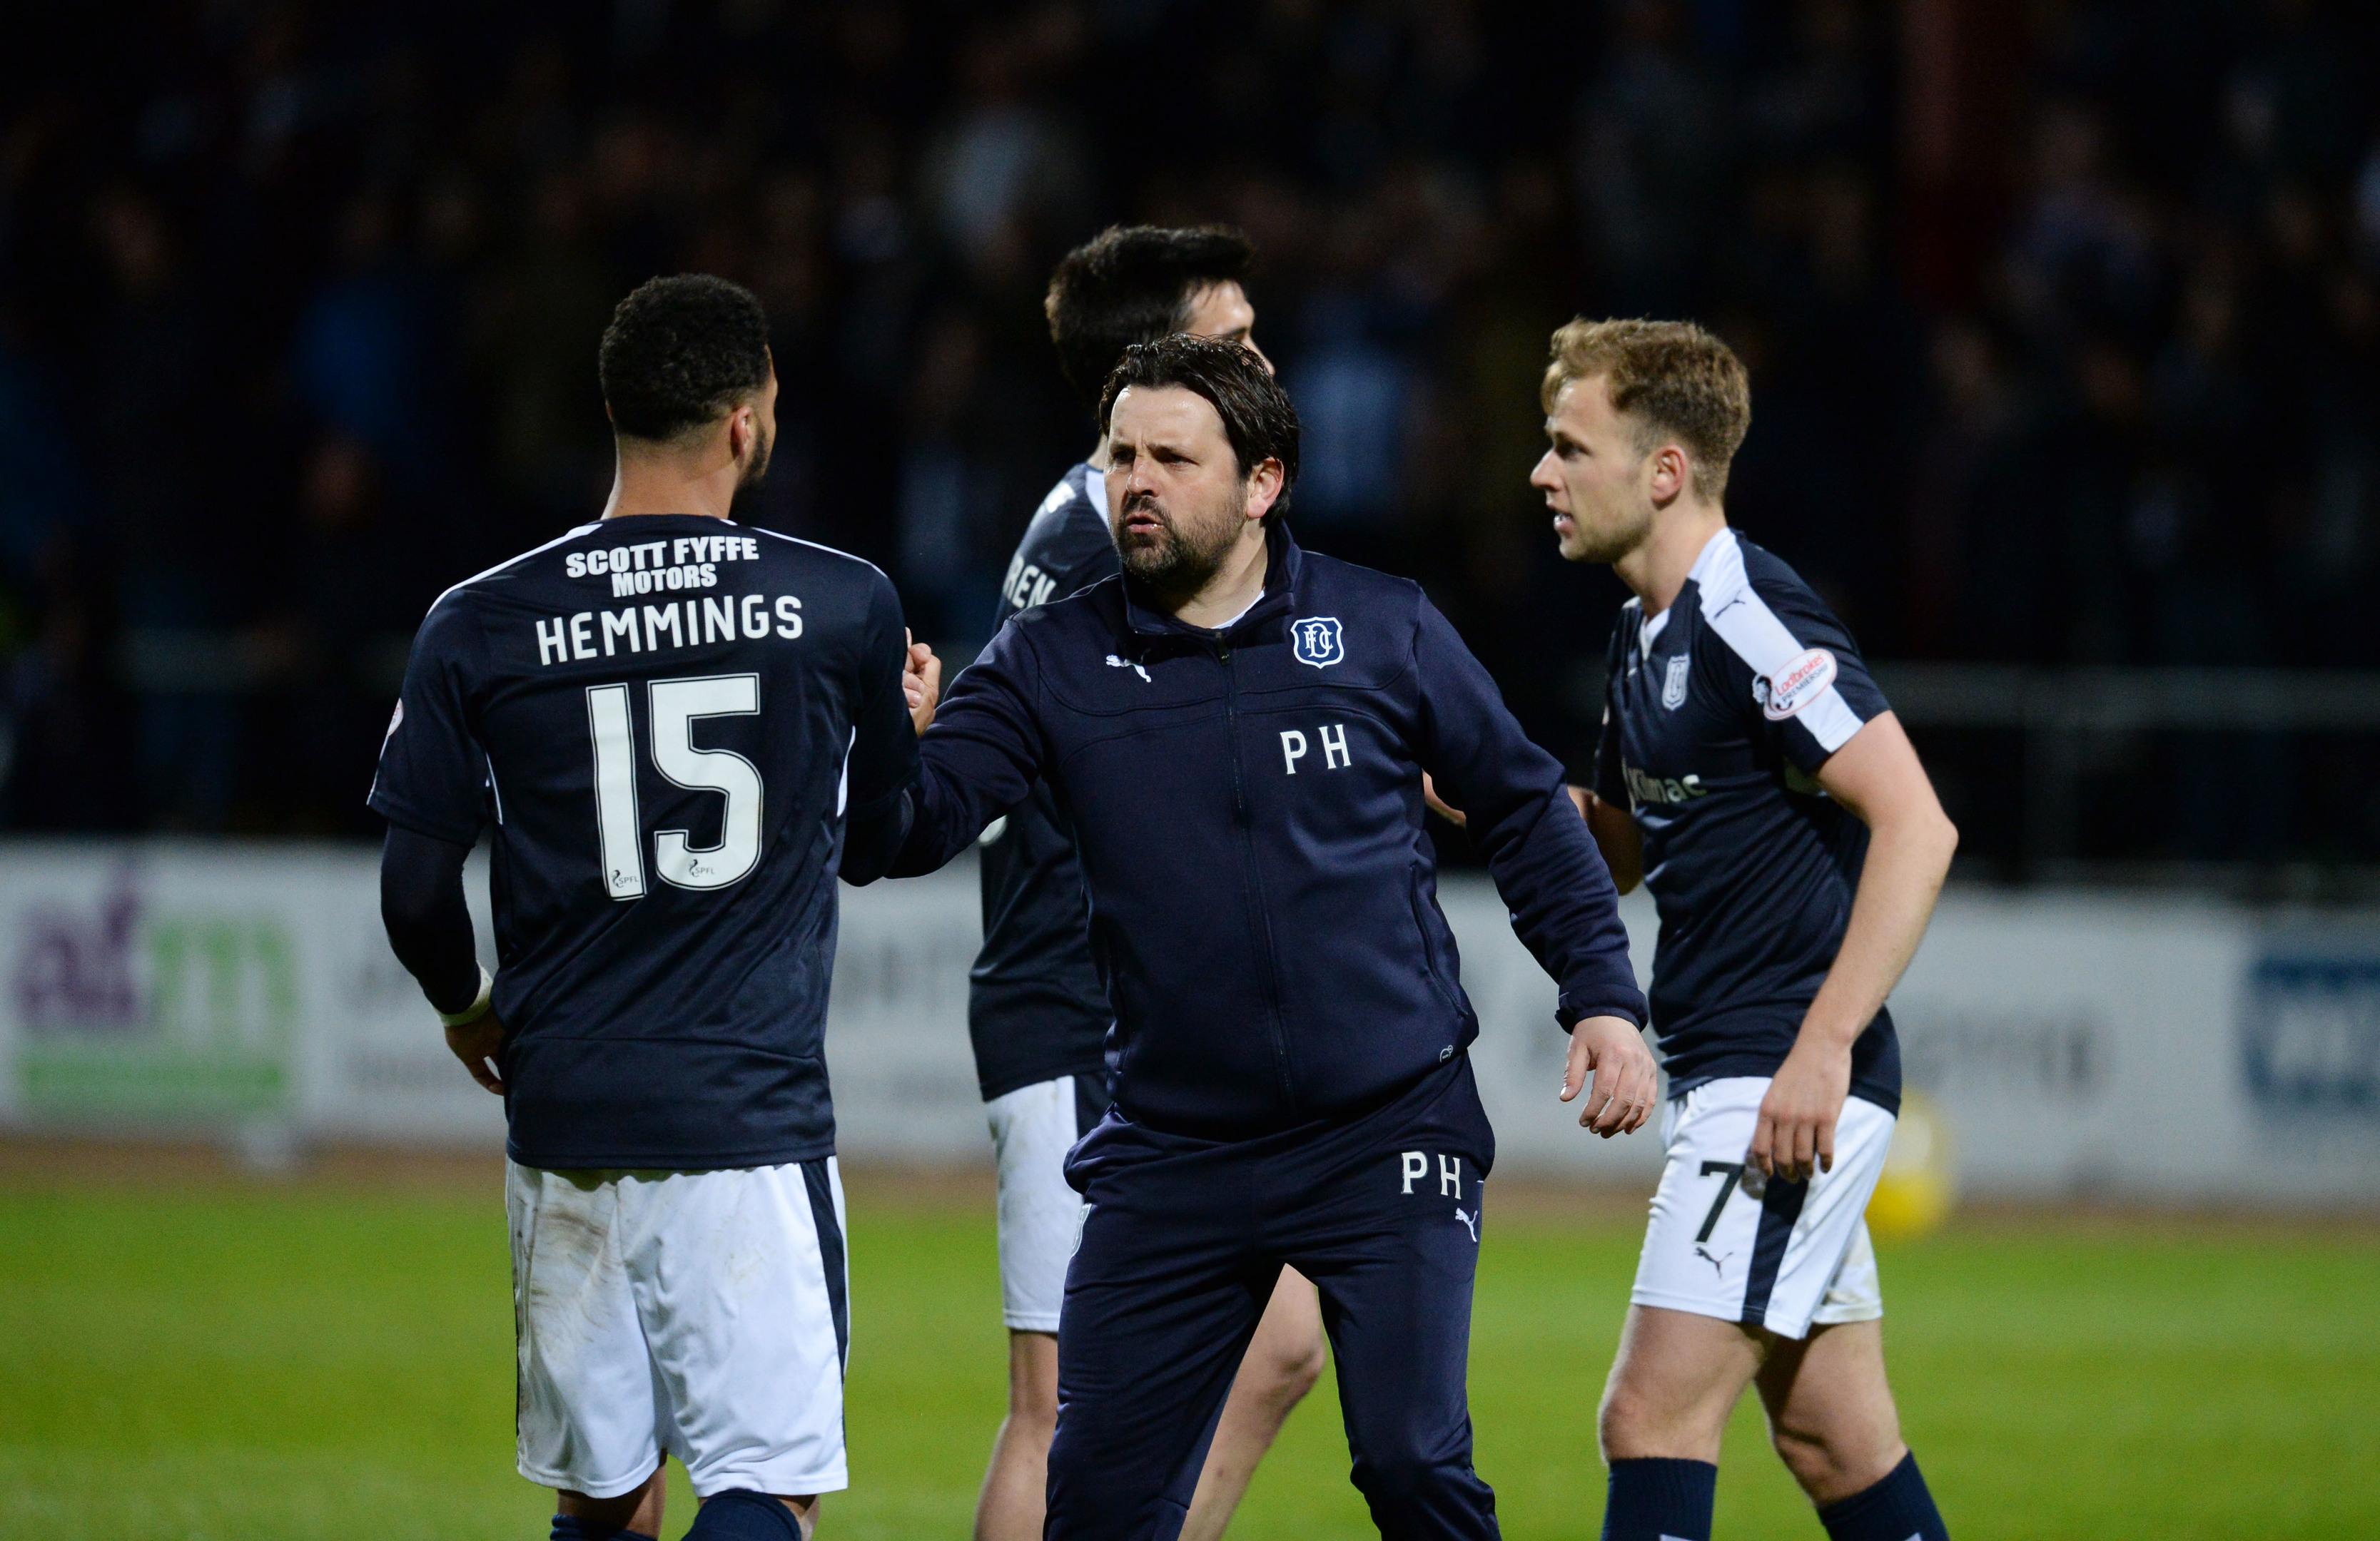 Dundee celebrate at full-time.